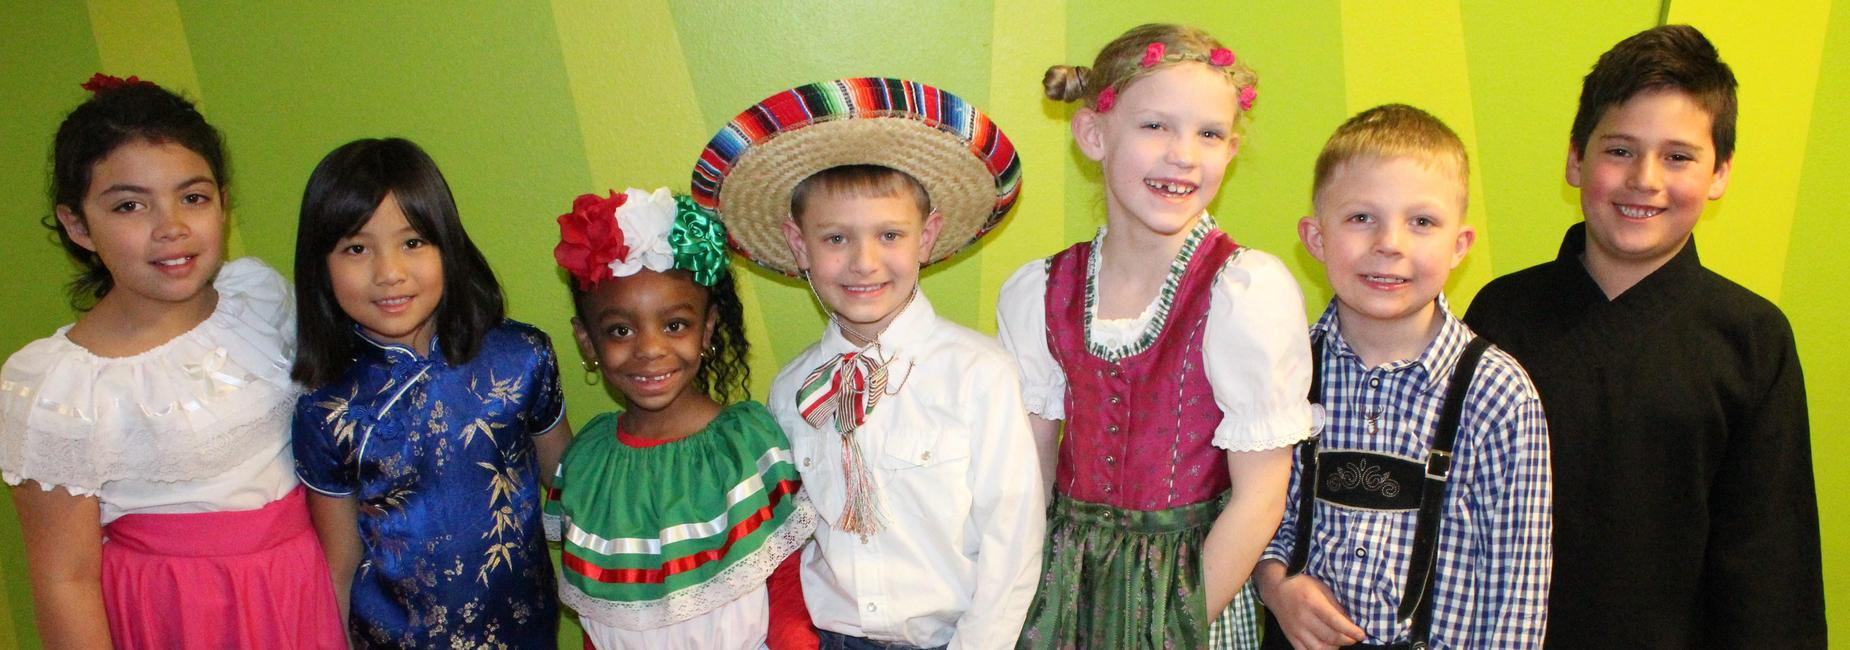 students dressed in different cultural outfits